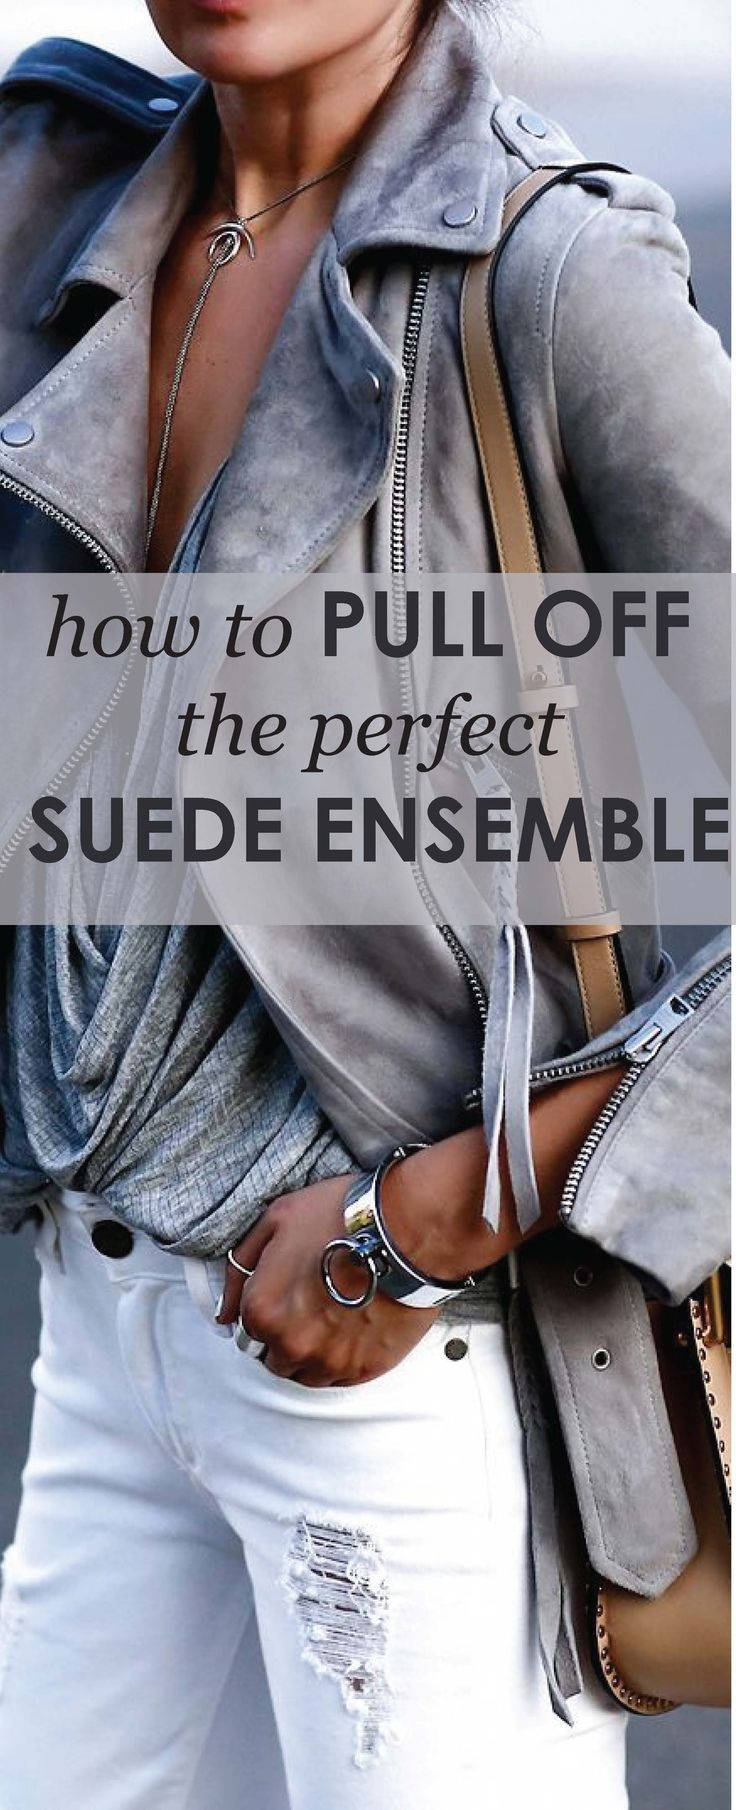 Have you been wondering how to rock the perfect suede outfit? Of course the Kardashians make it look so easy! The secret is rocking one…